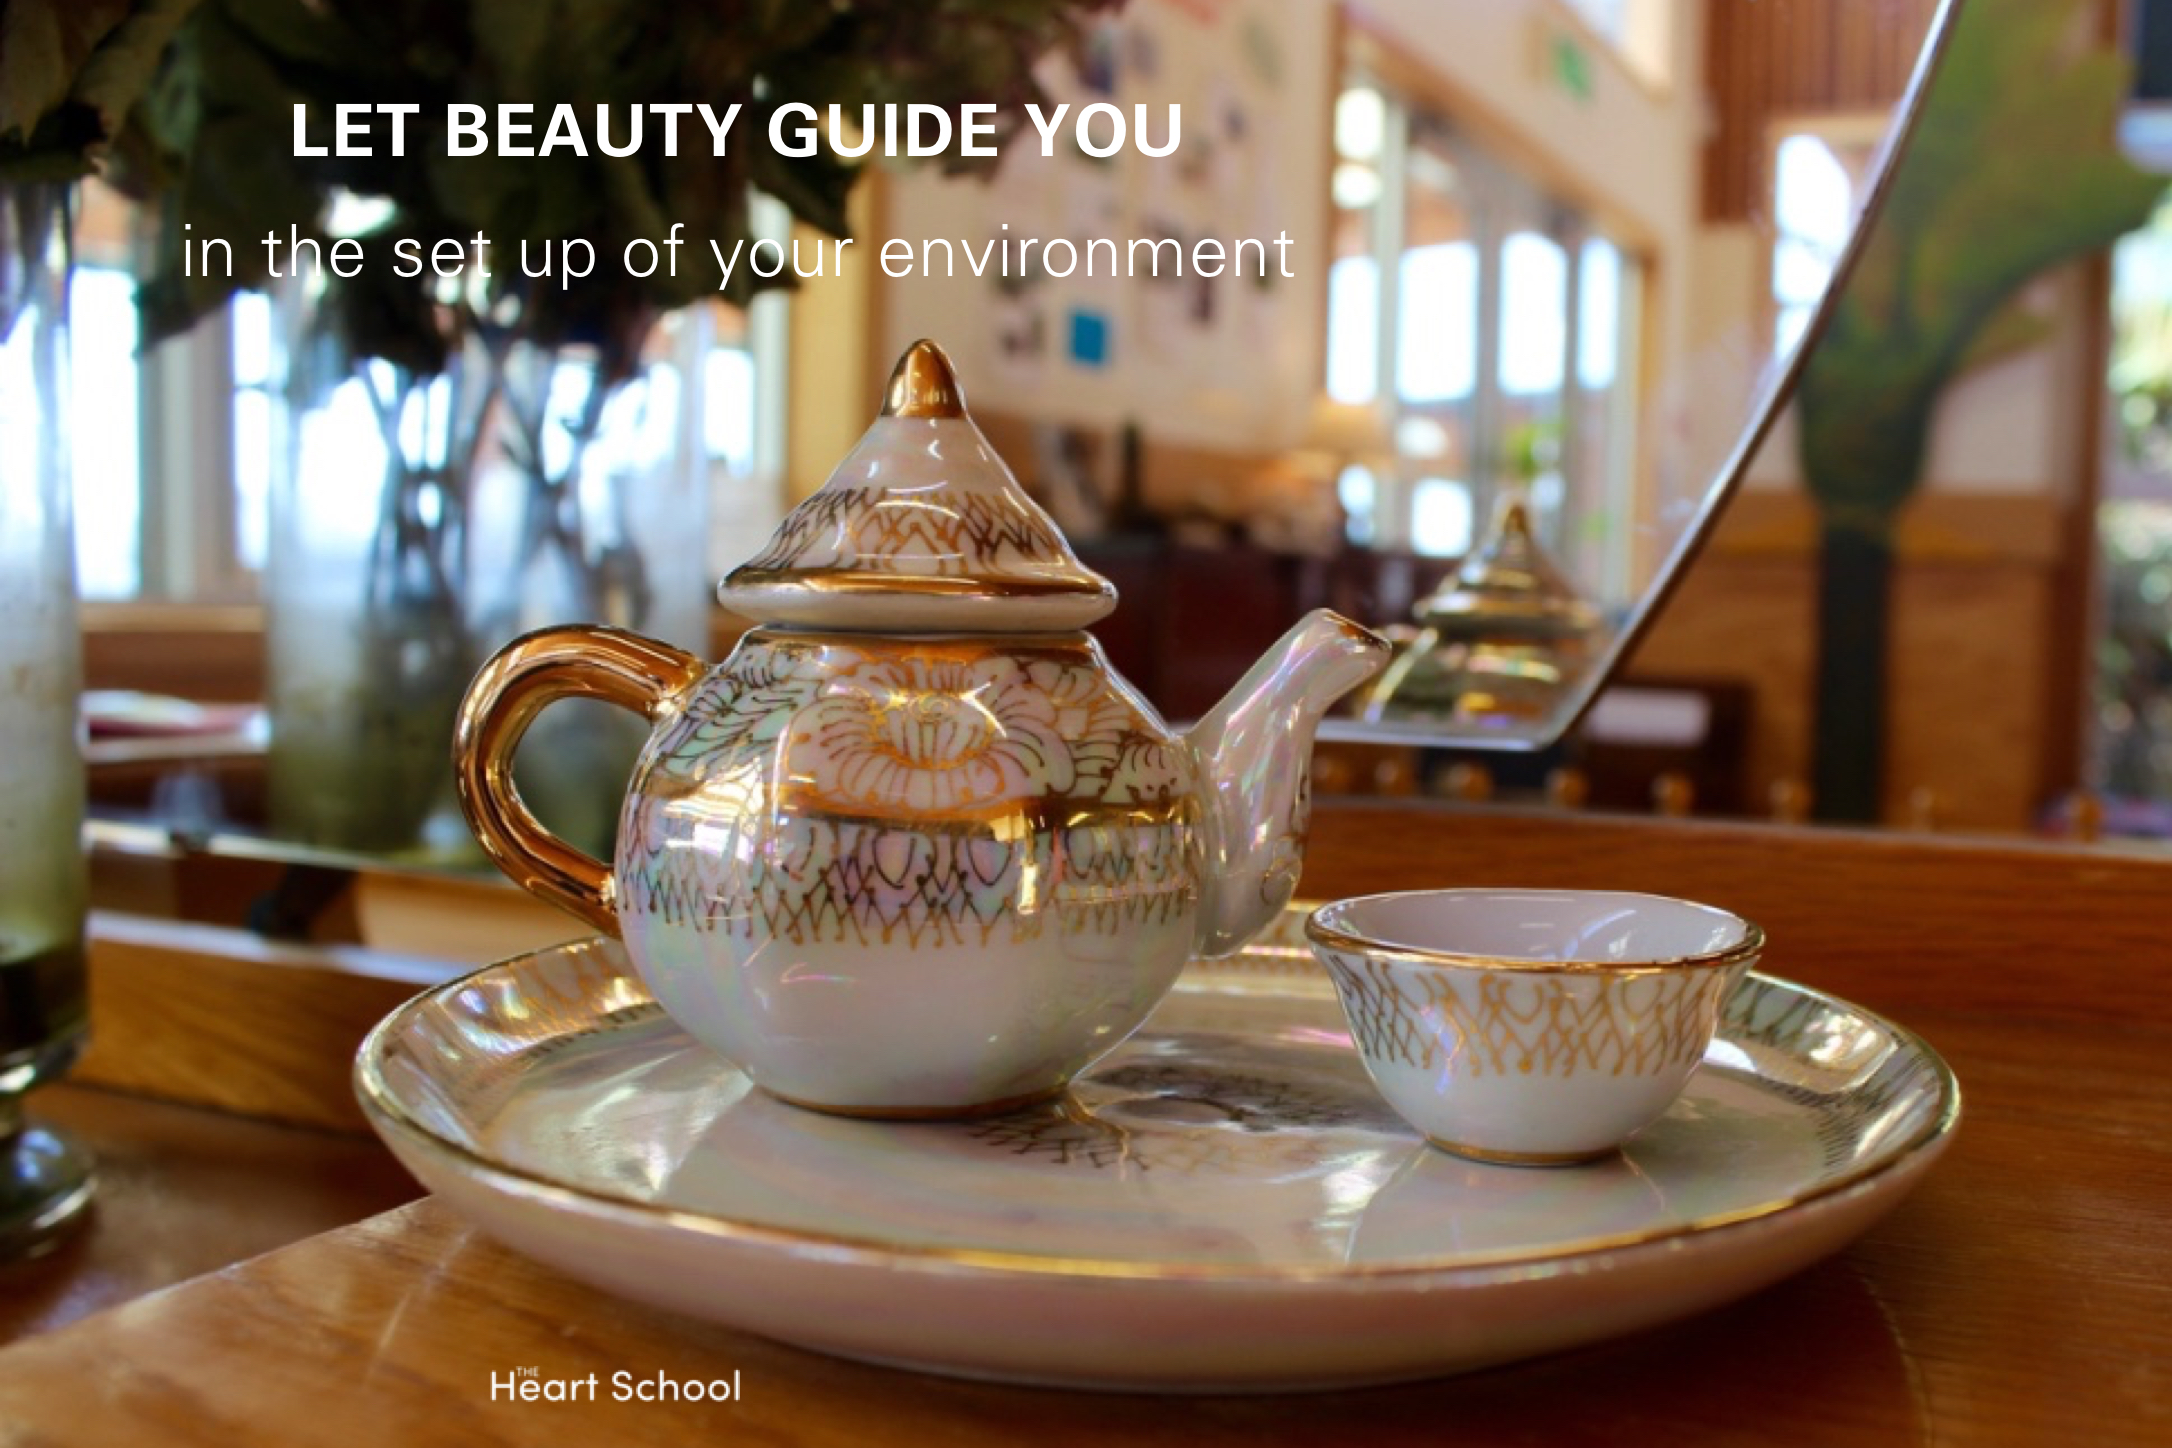 You reap what you sow! We get given the most beautiful little trinkets from people's garage sales. Inject love and beauty into your space. Let beauty guide you in how you set up your environment, not the ece catalogue.